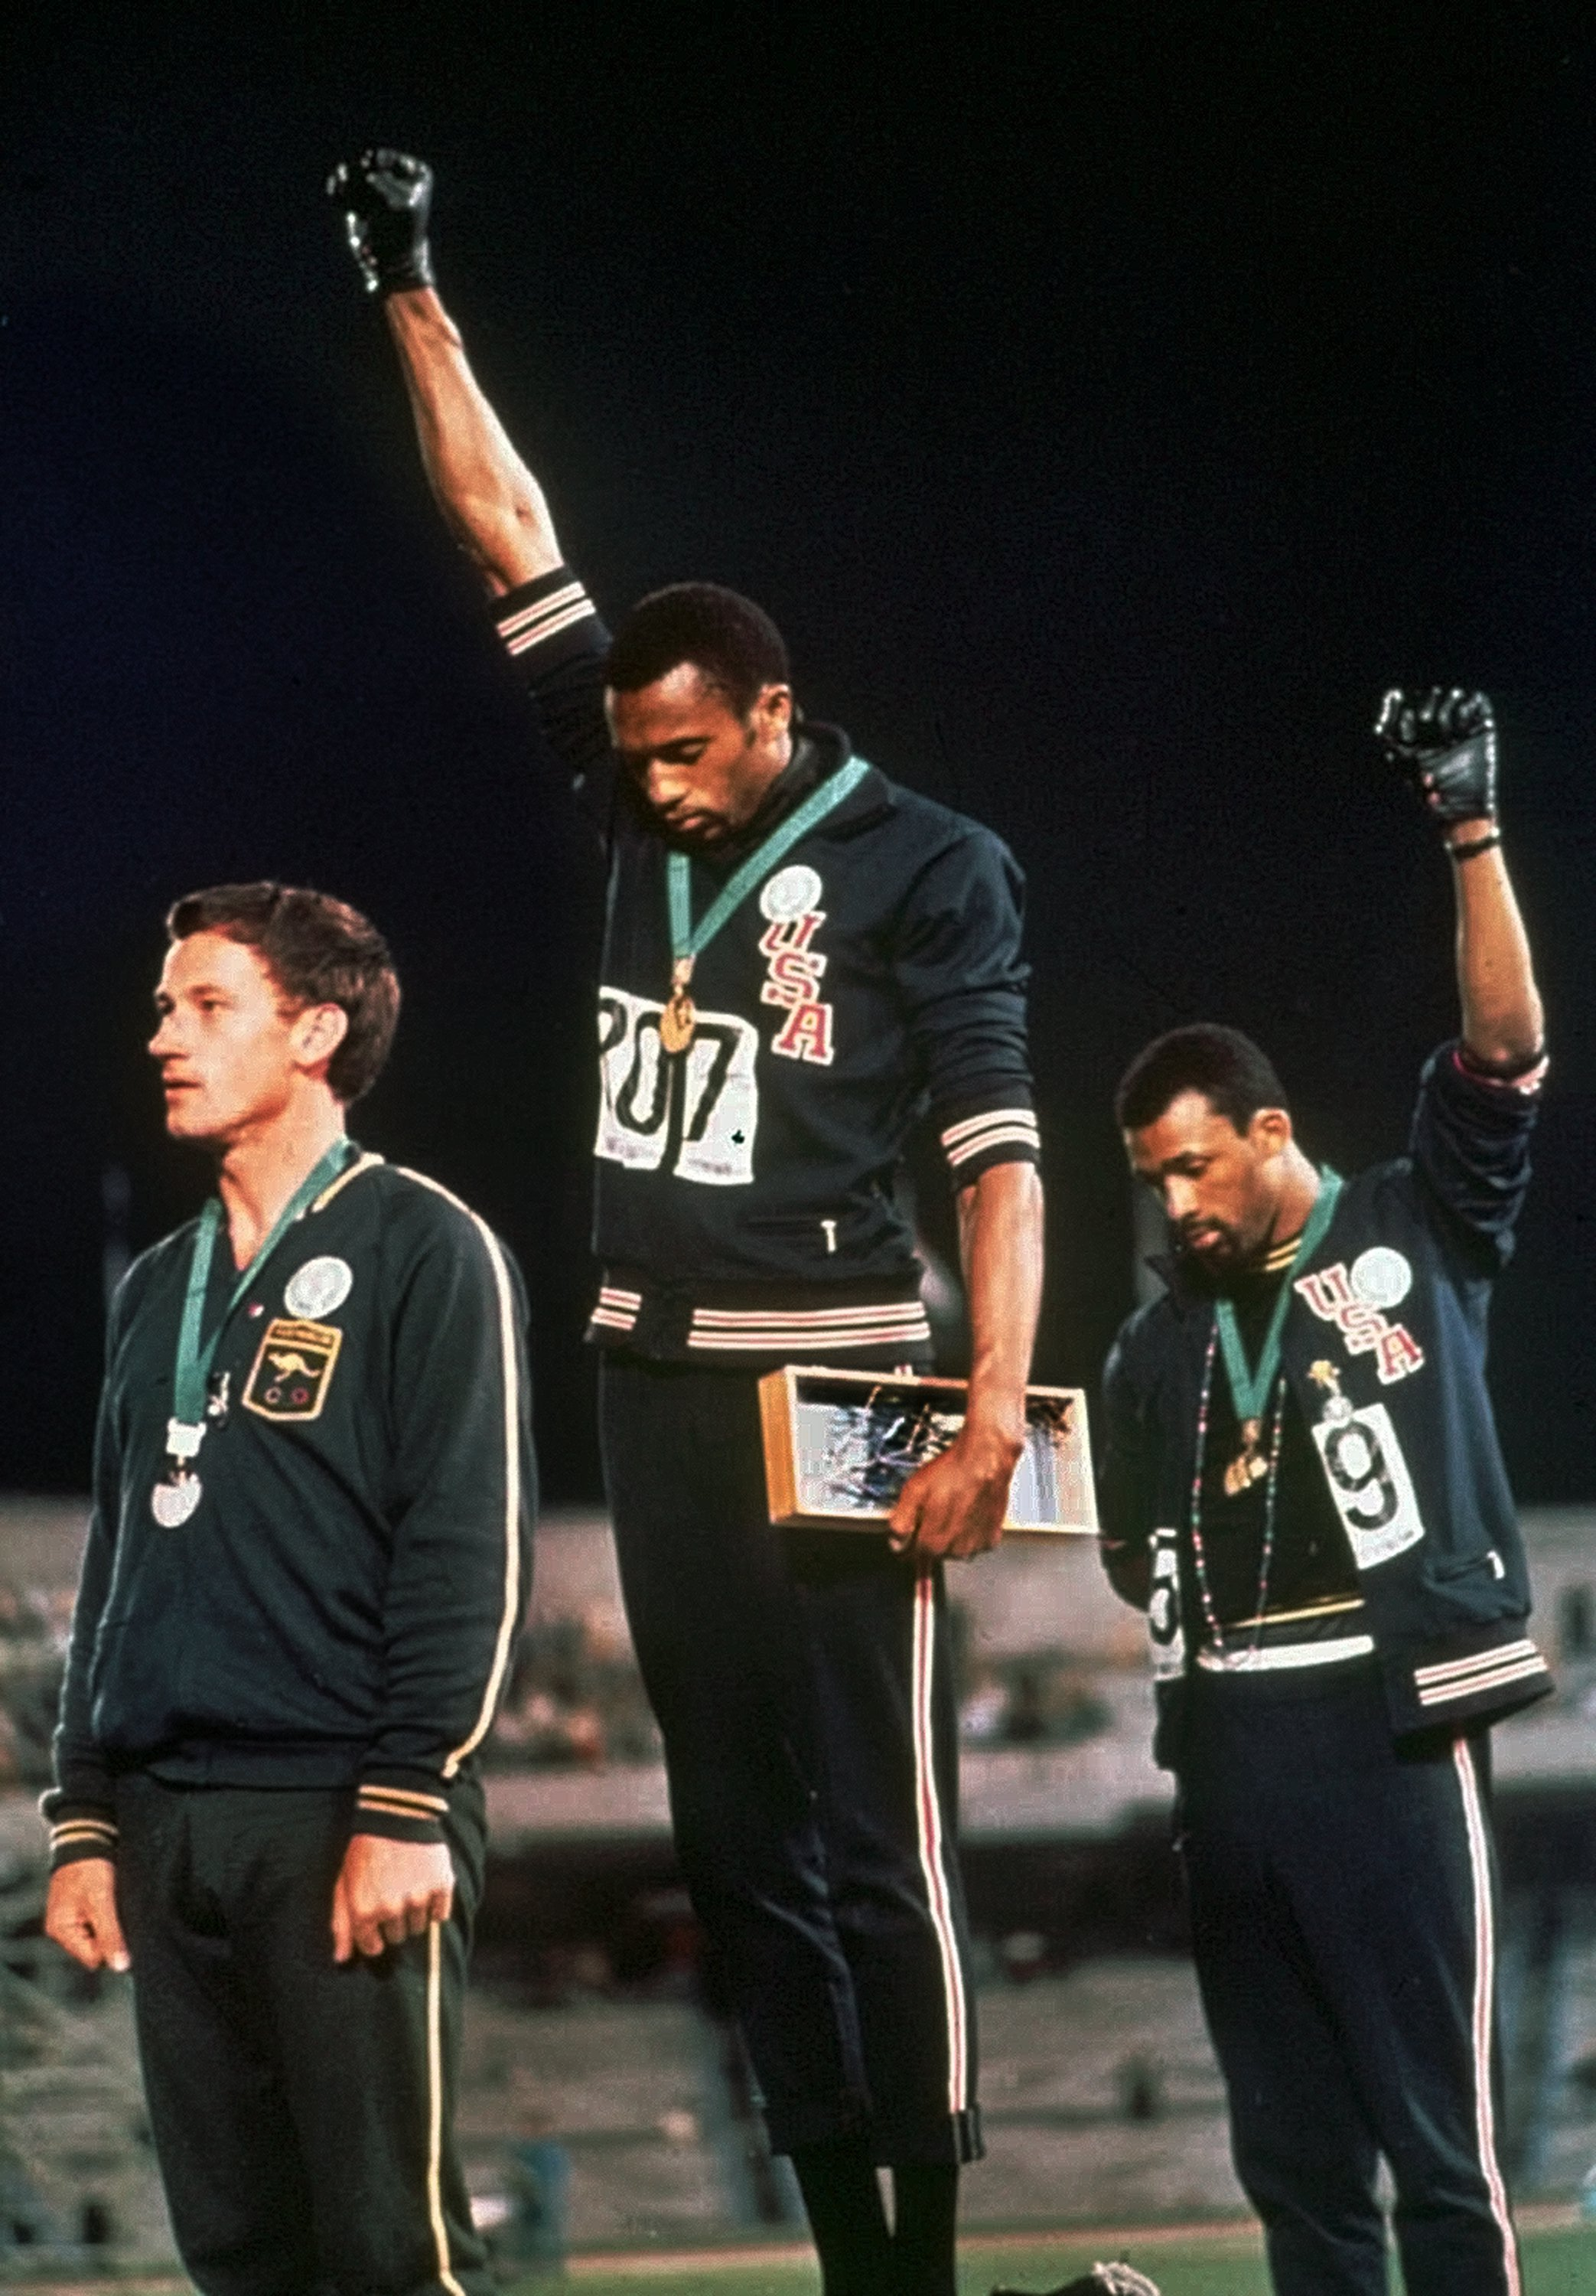 Extending gloved hands skyward in racial protest us athletes tommie smith centre and john carlos right stare downward during the 1968 olympic medal